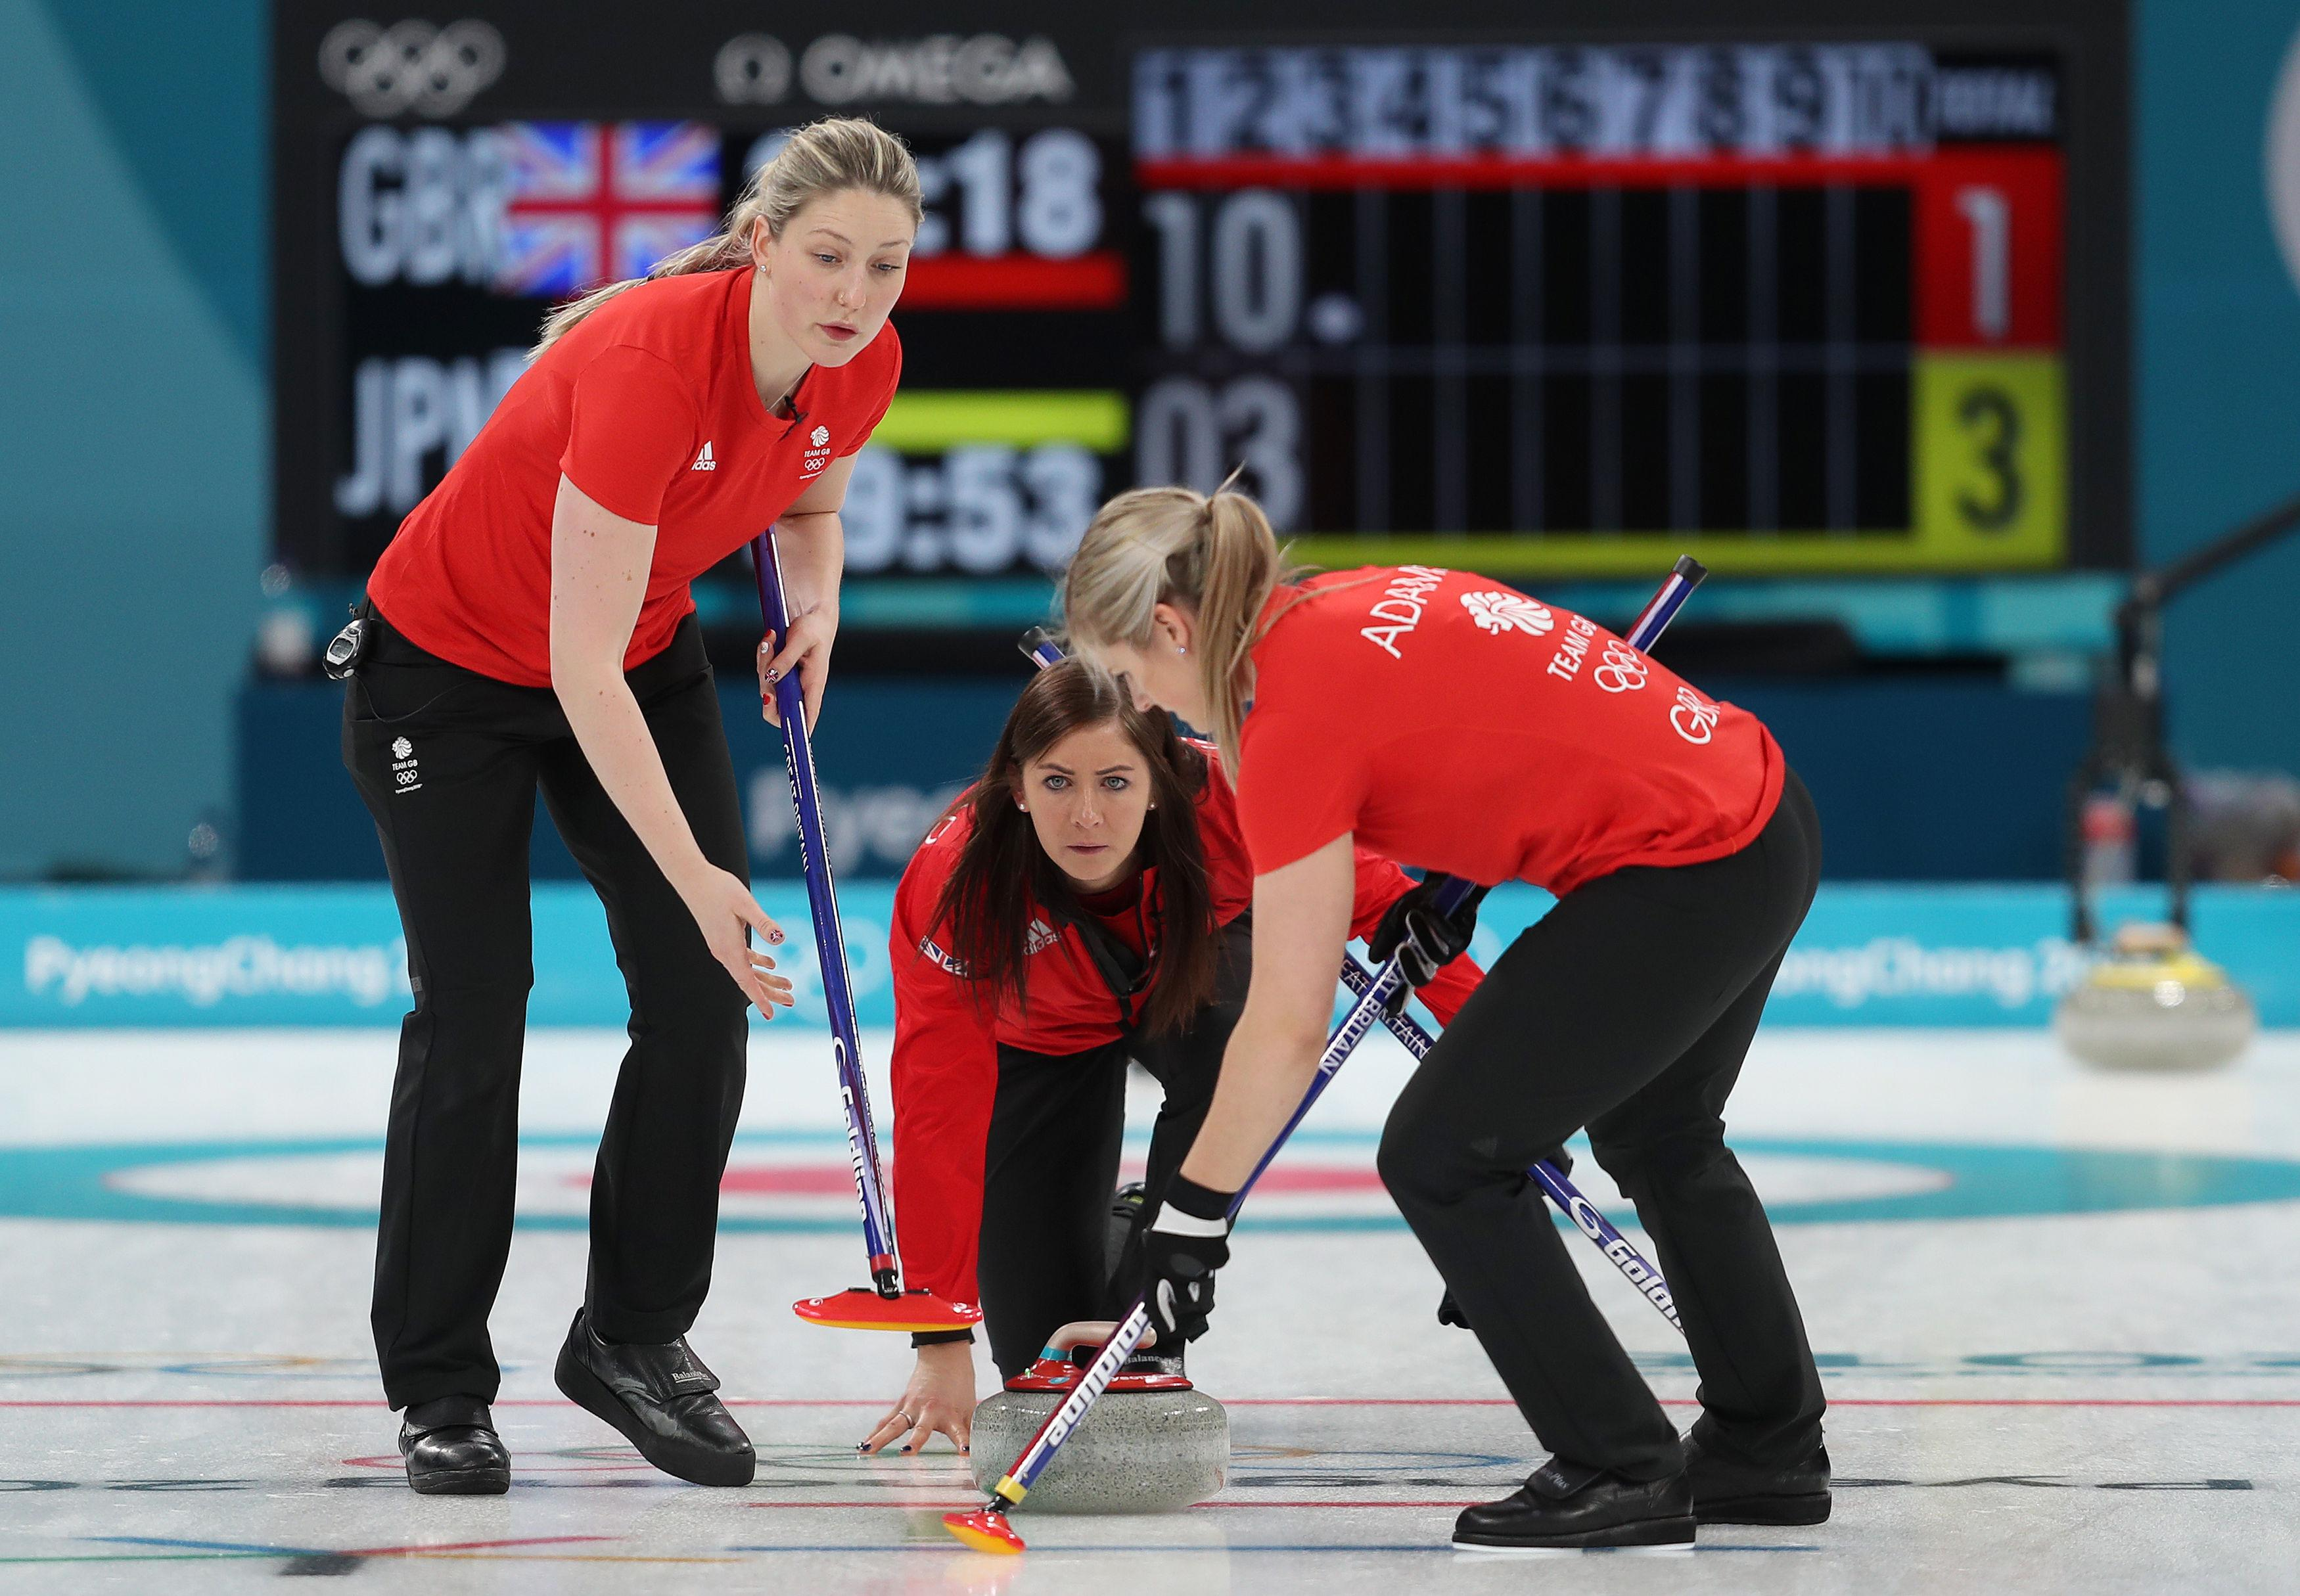 Team GB women are through to the semi-final in curling to face Sweden